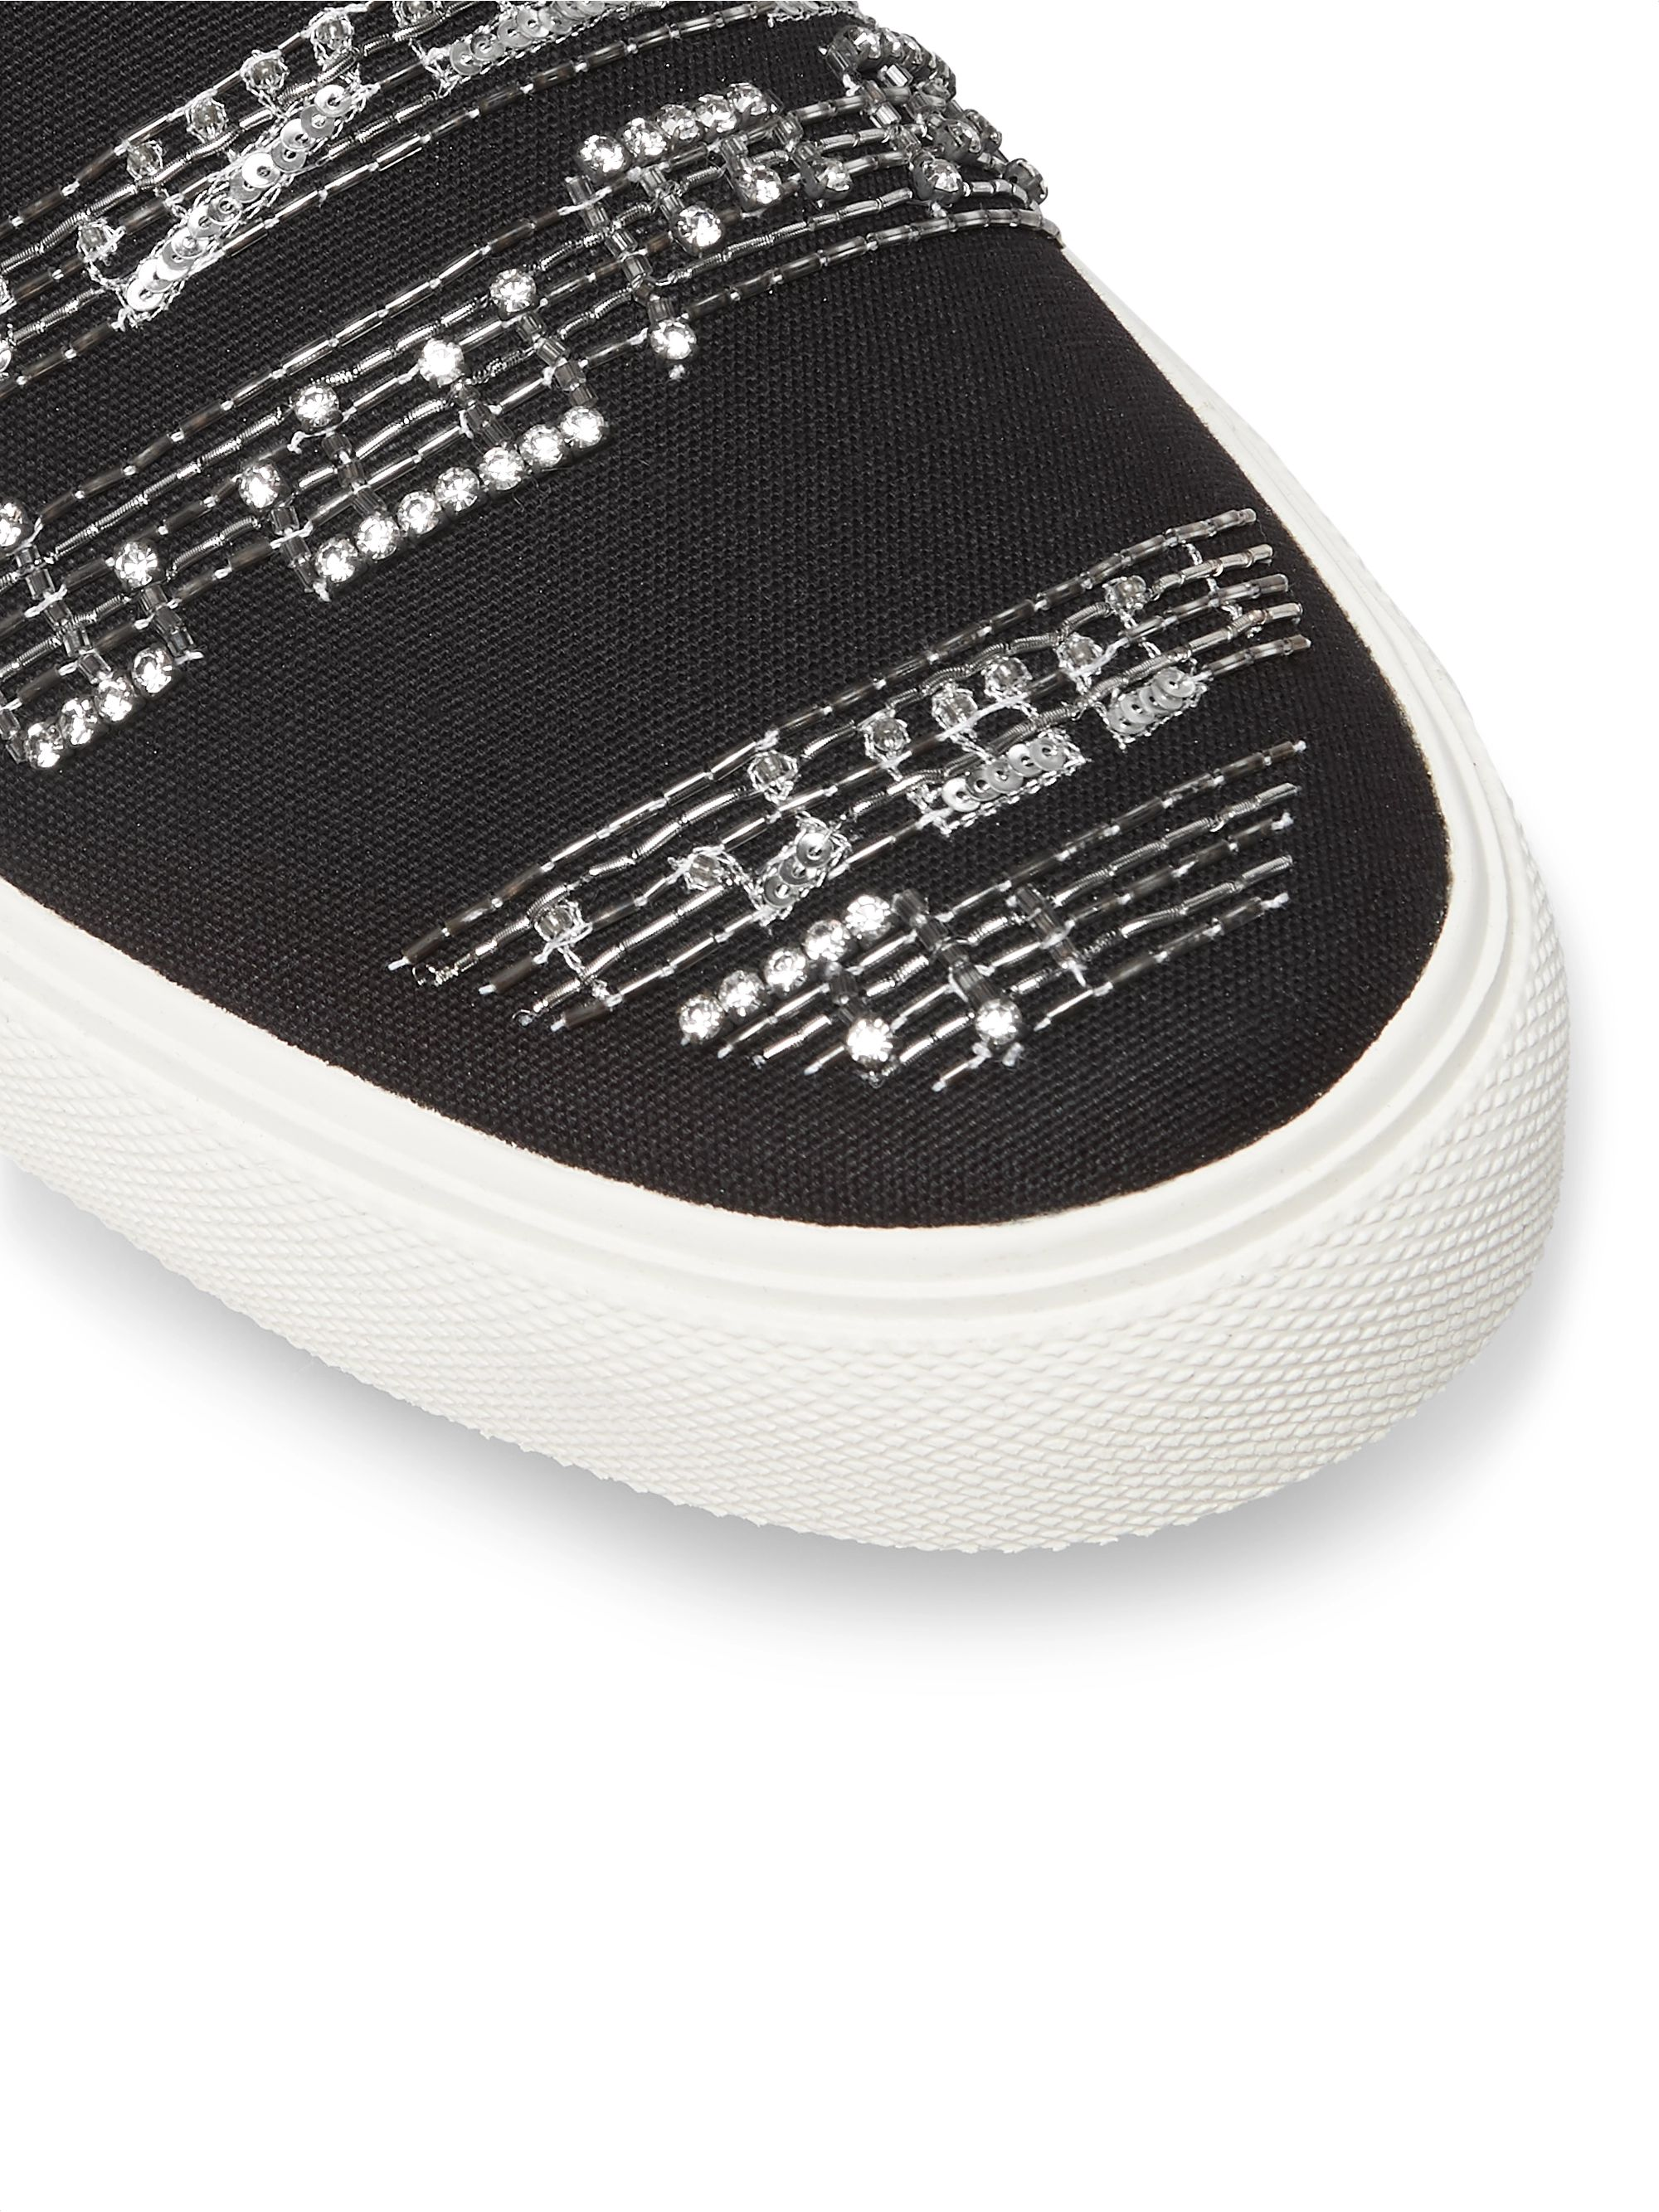 AMIRI Embellished Leather-Trimmed Canvas Slip-On Sneakers